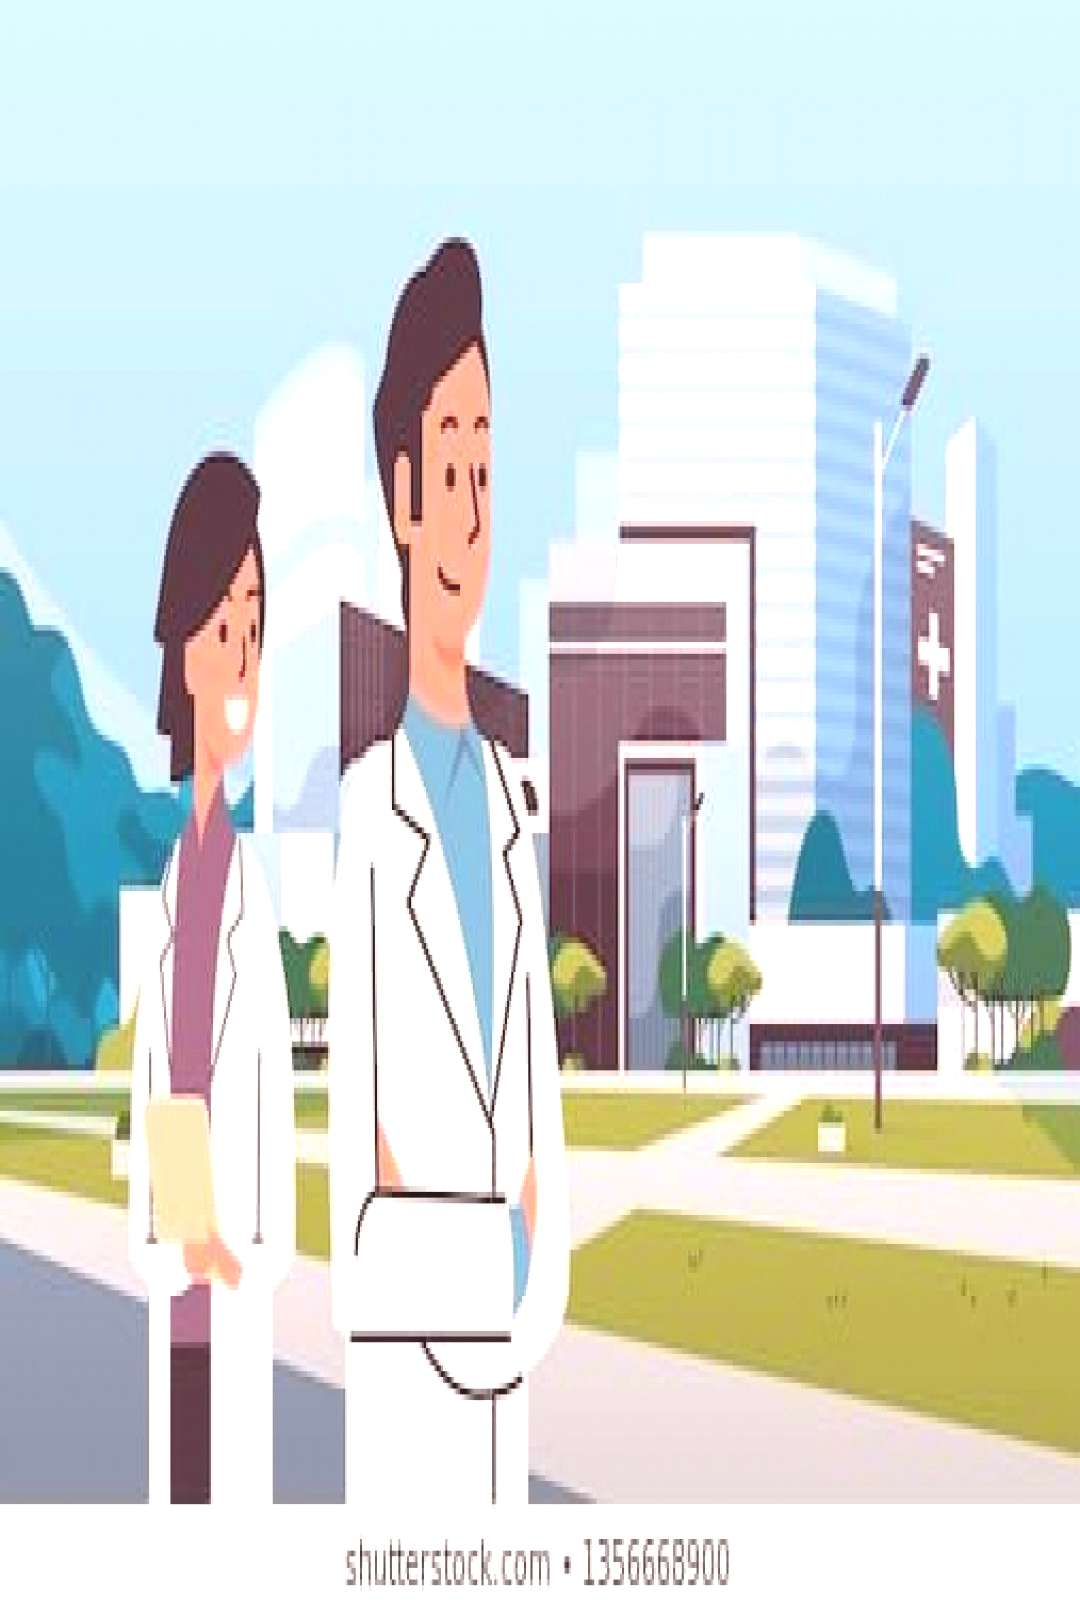 couple man woman doctors in uniform standing together over hospital building modern medical clinic